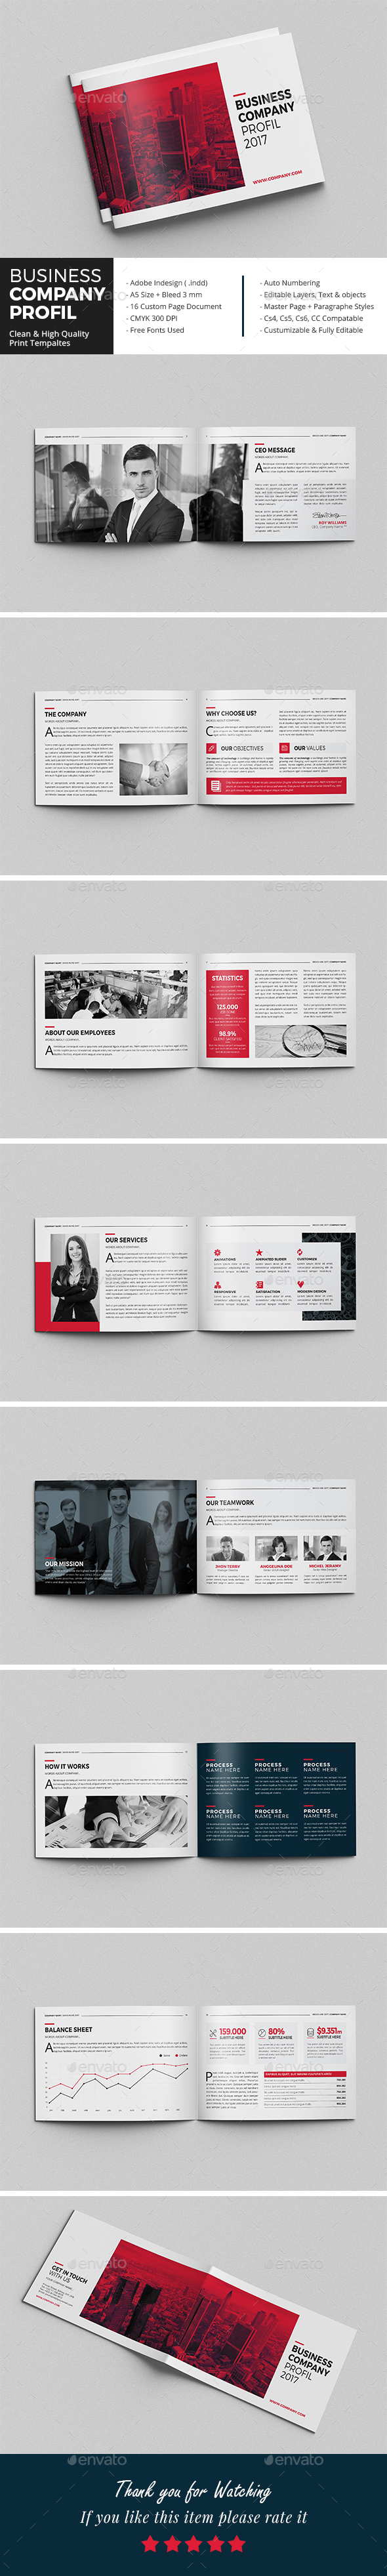 Business Company Profil - Corporate Brochures